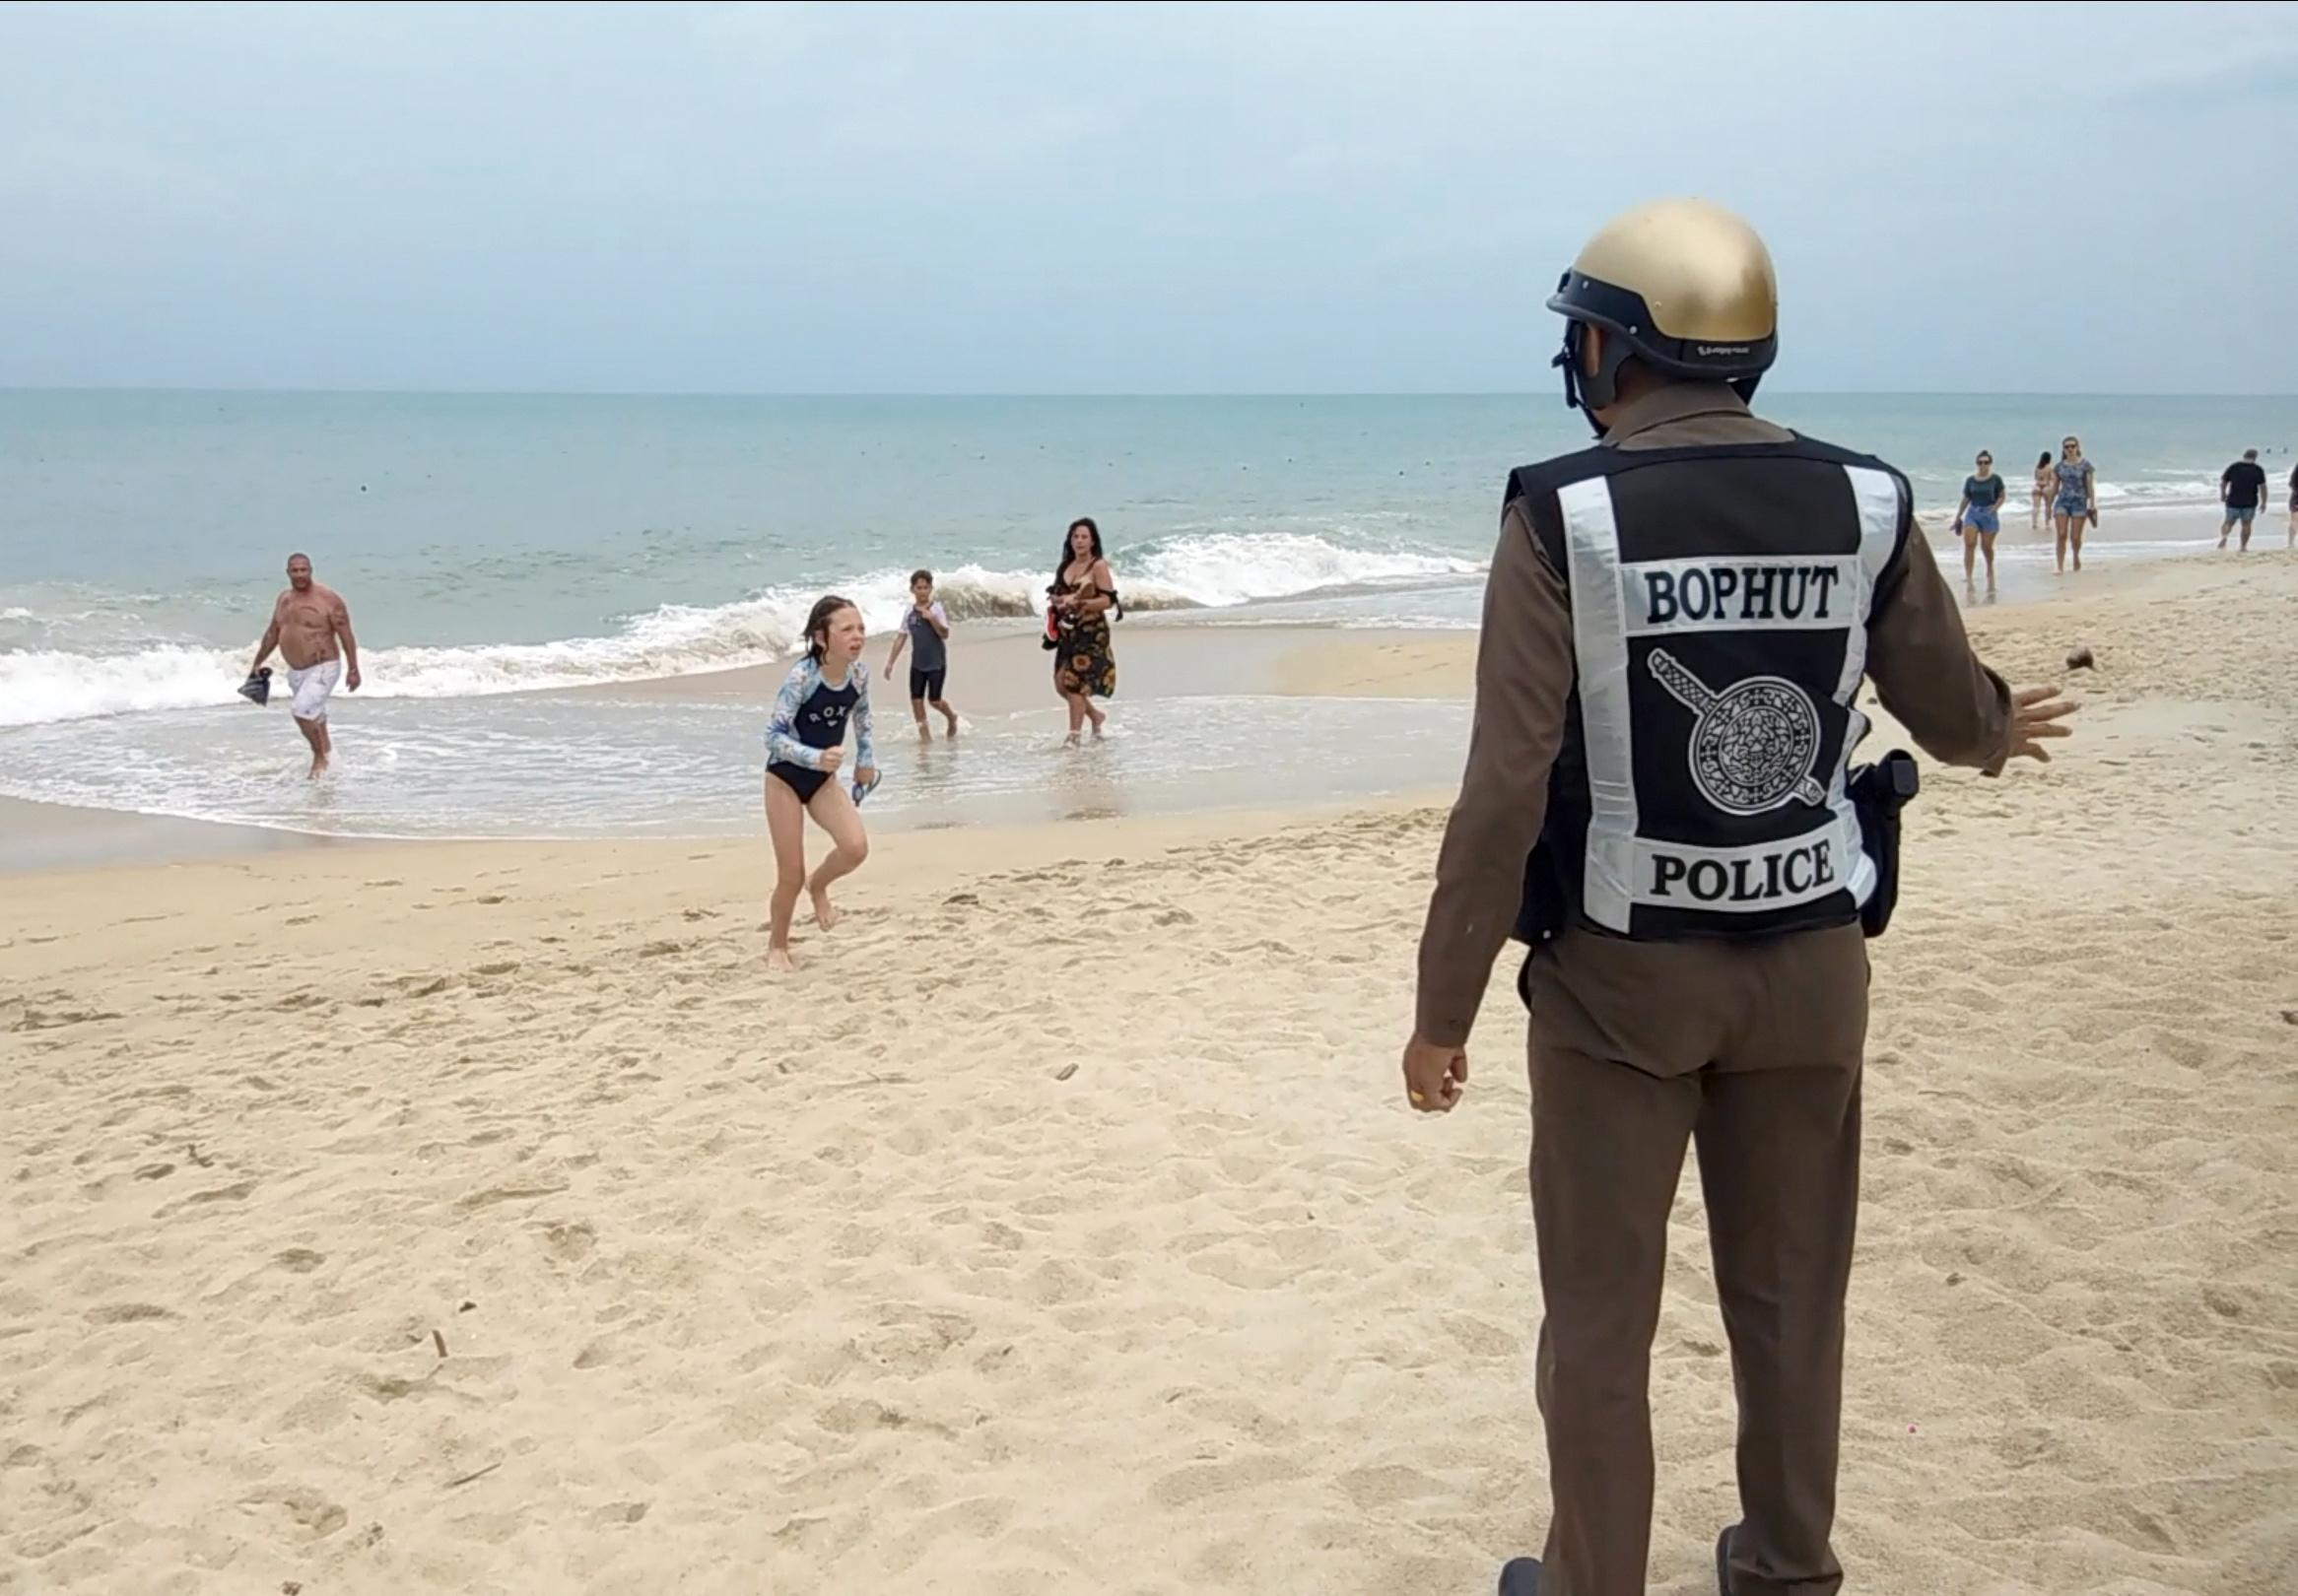 storm-pabuk-tourists-flee-thailand-as-tropical-storm-threatens-22-foot-waves-the-independent Storm Pabuk: Tourists flee Thailand as tropical storm 'threatens 22-foot waves' - The Independent